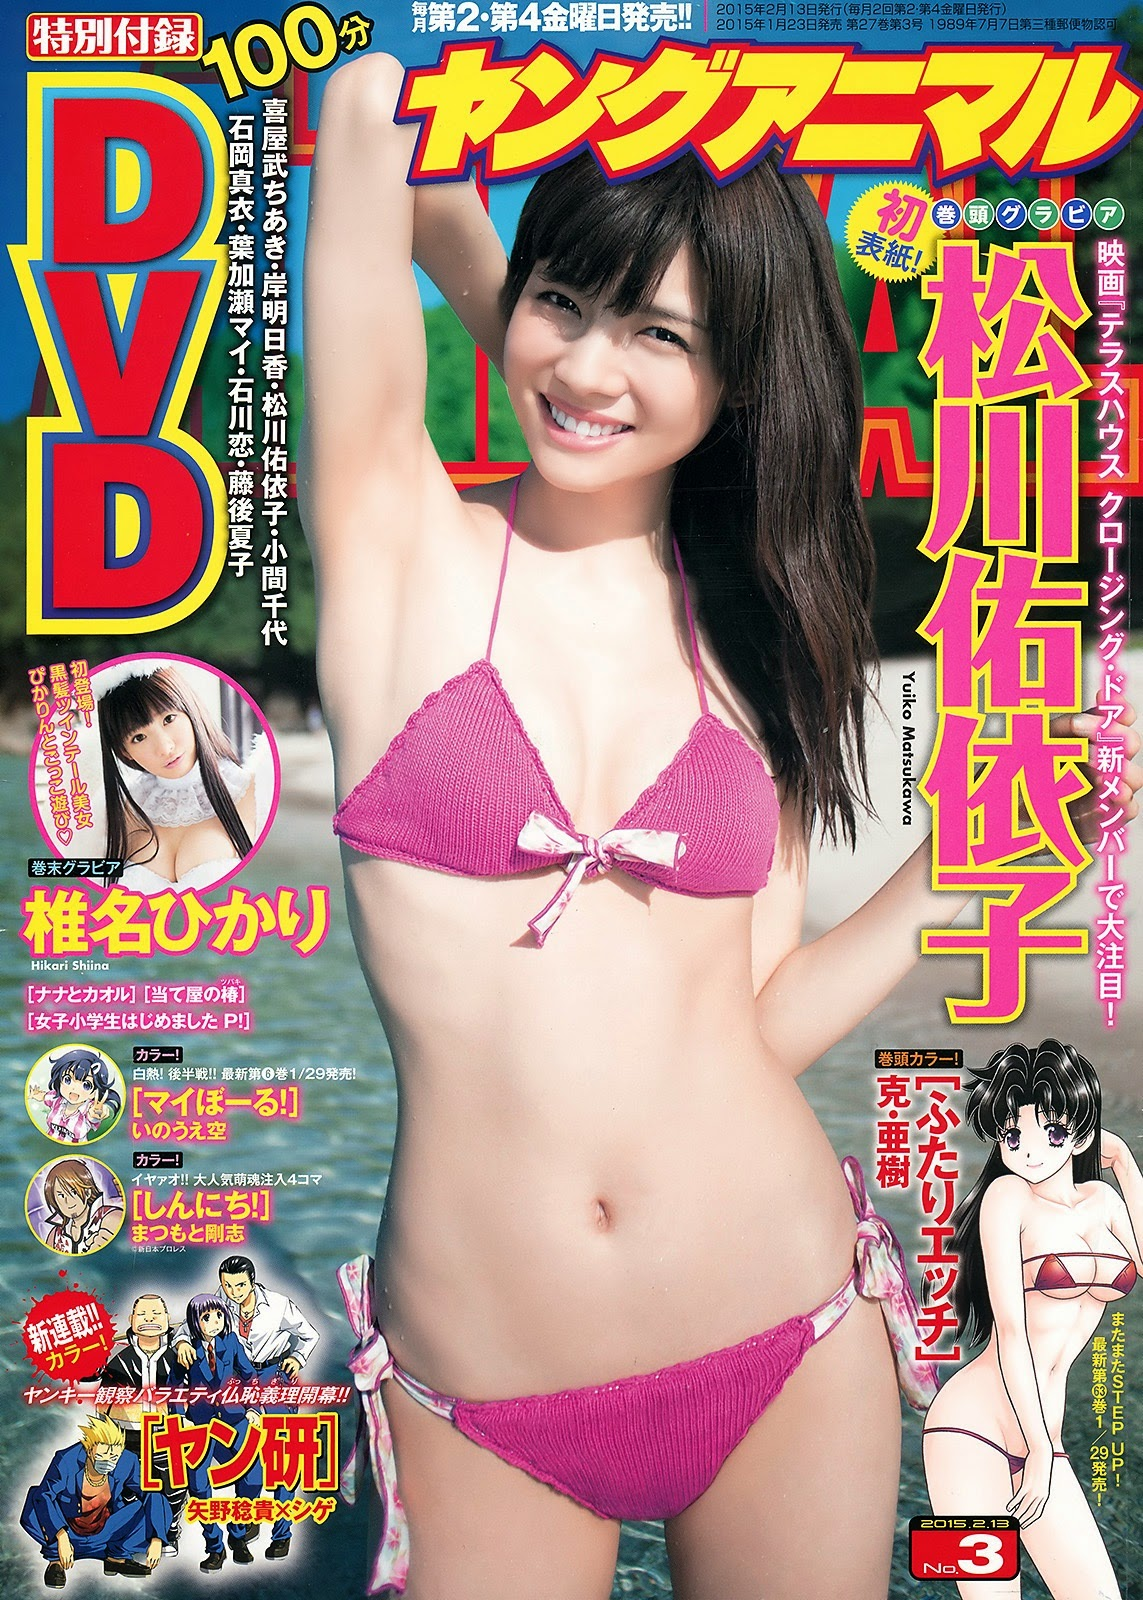 Yuiko Matsukawa 松川佑依子 Young Animal February 2015 Cover